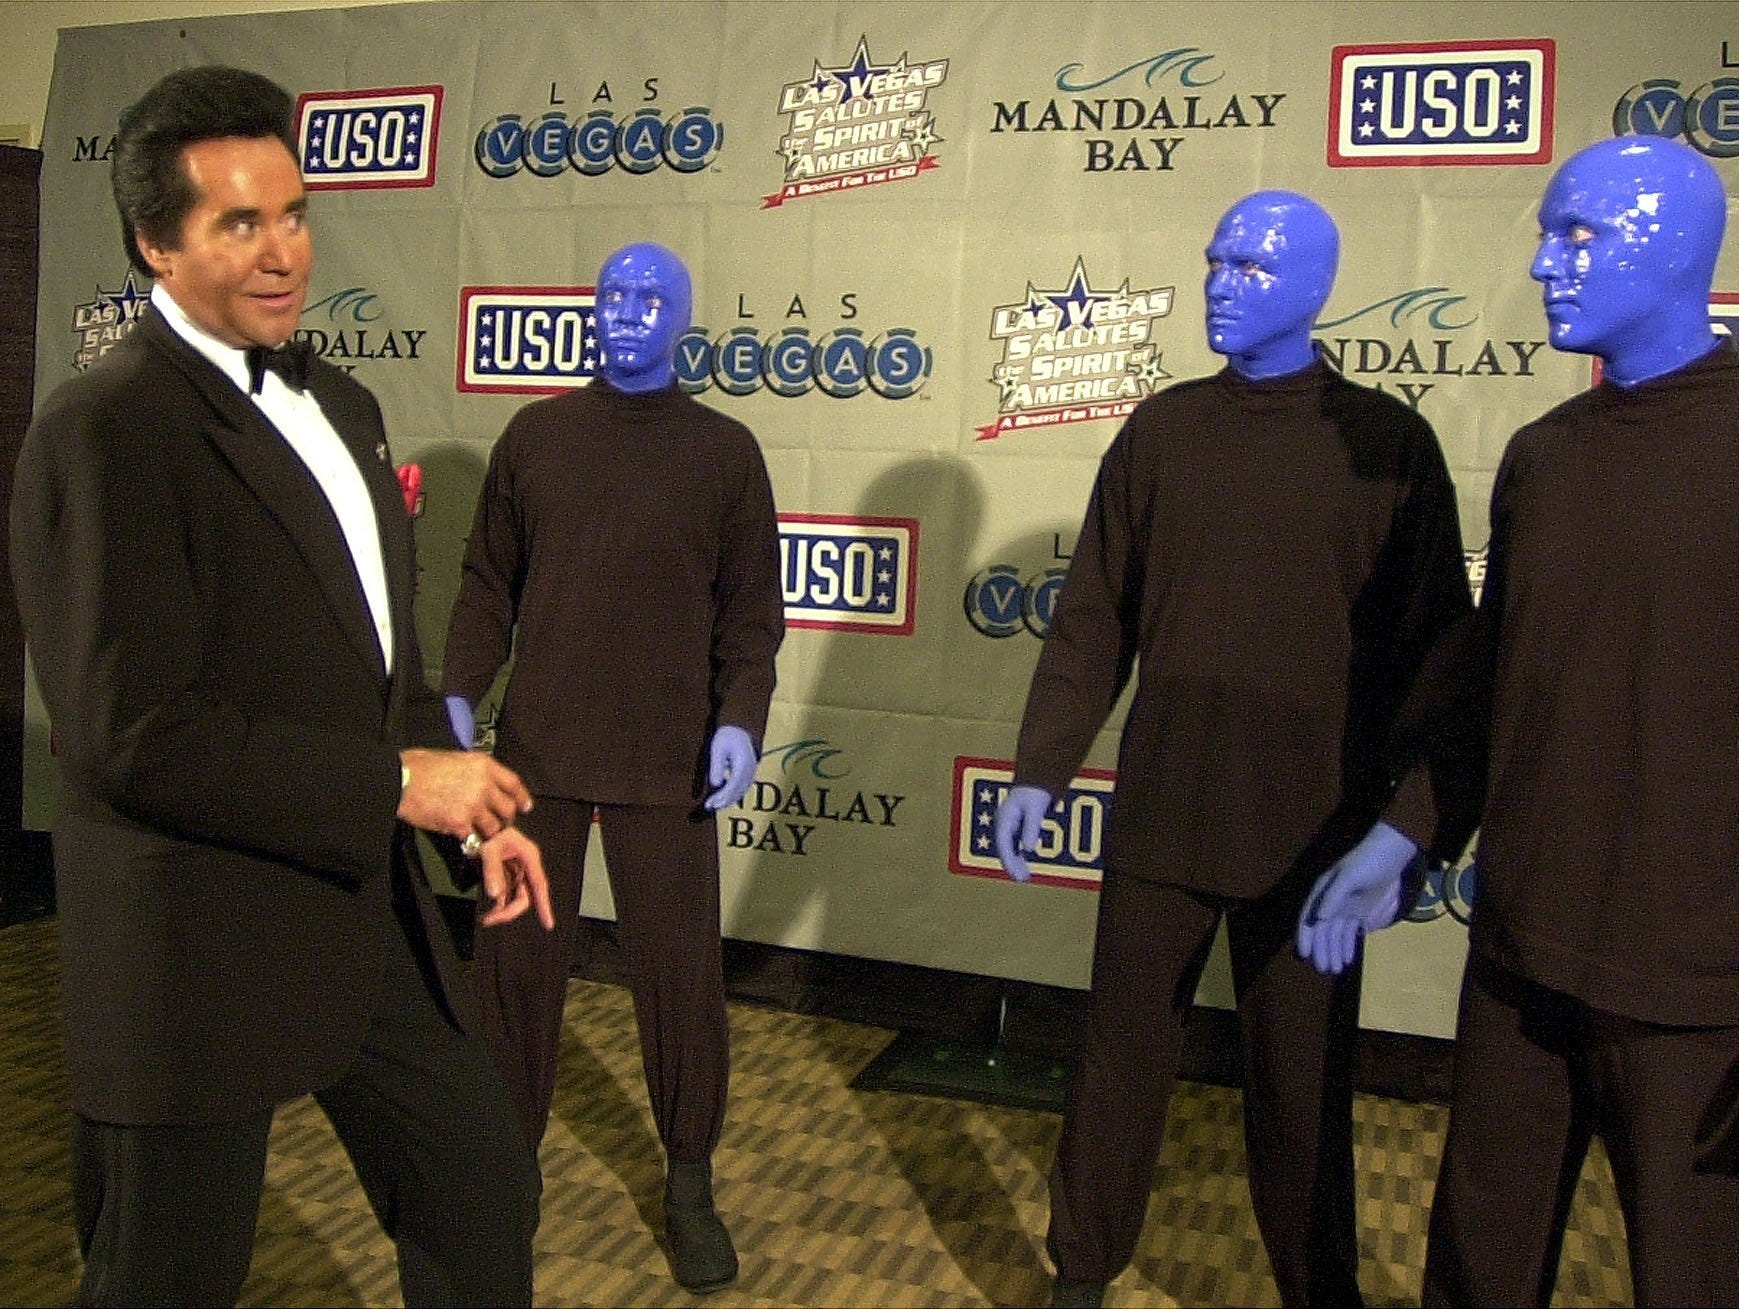 Wayne Newton jokes with members of the Blue Man Group before a USO benefit concert Sunday, Nov. 11, 2001, at the Mandalay Bay Hotel & Resort in Las Vegas.